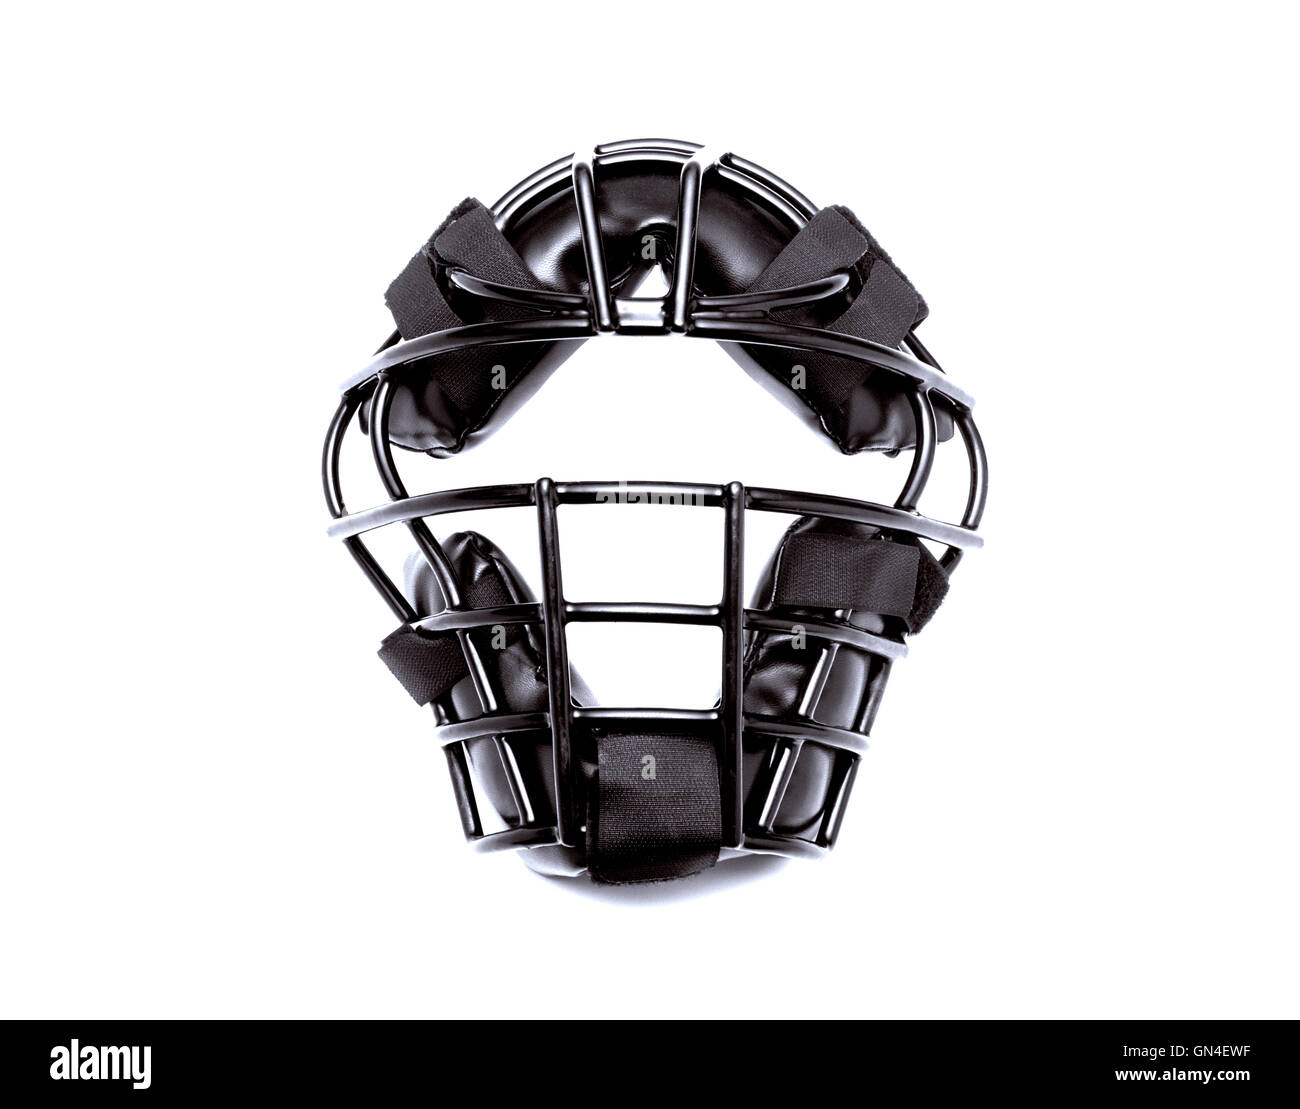 football helmet with reflection on white background - Stock Image